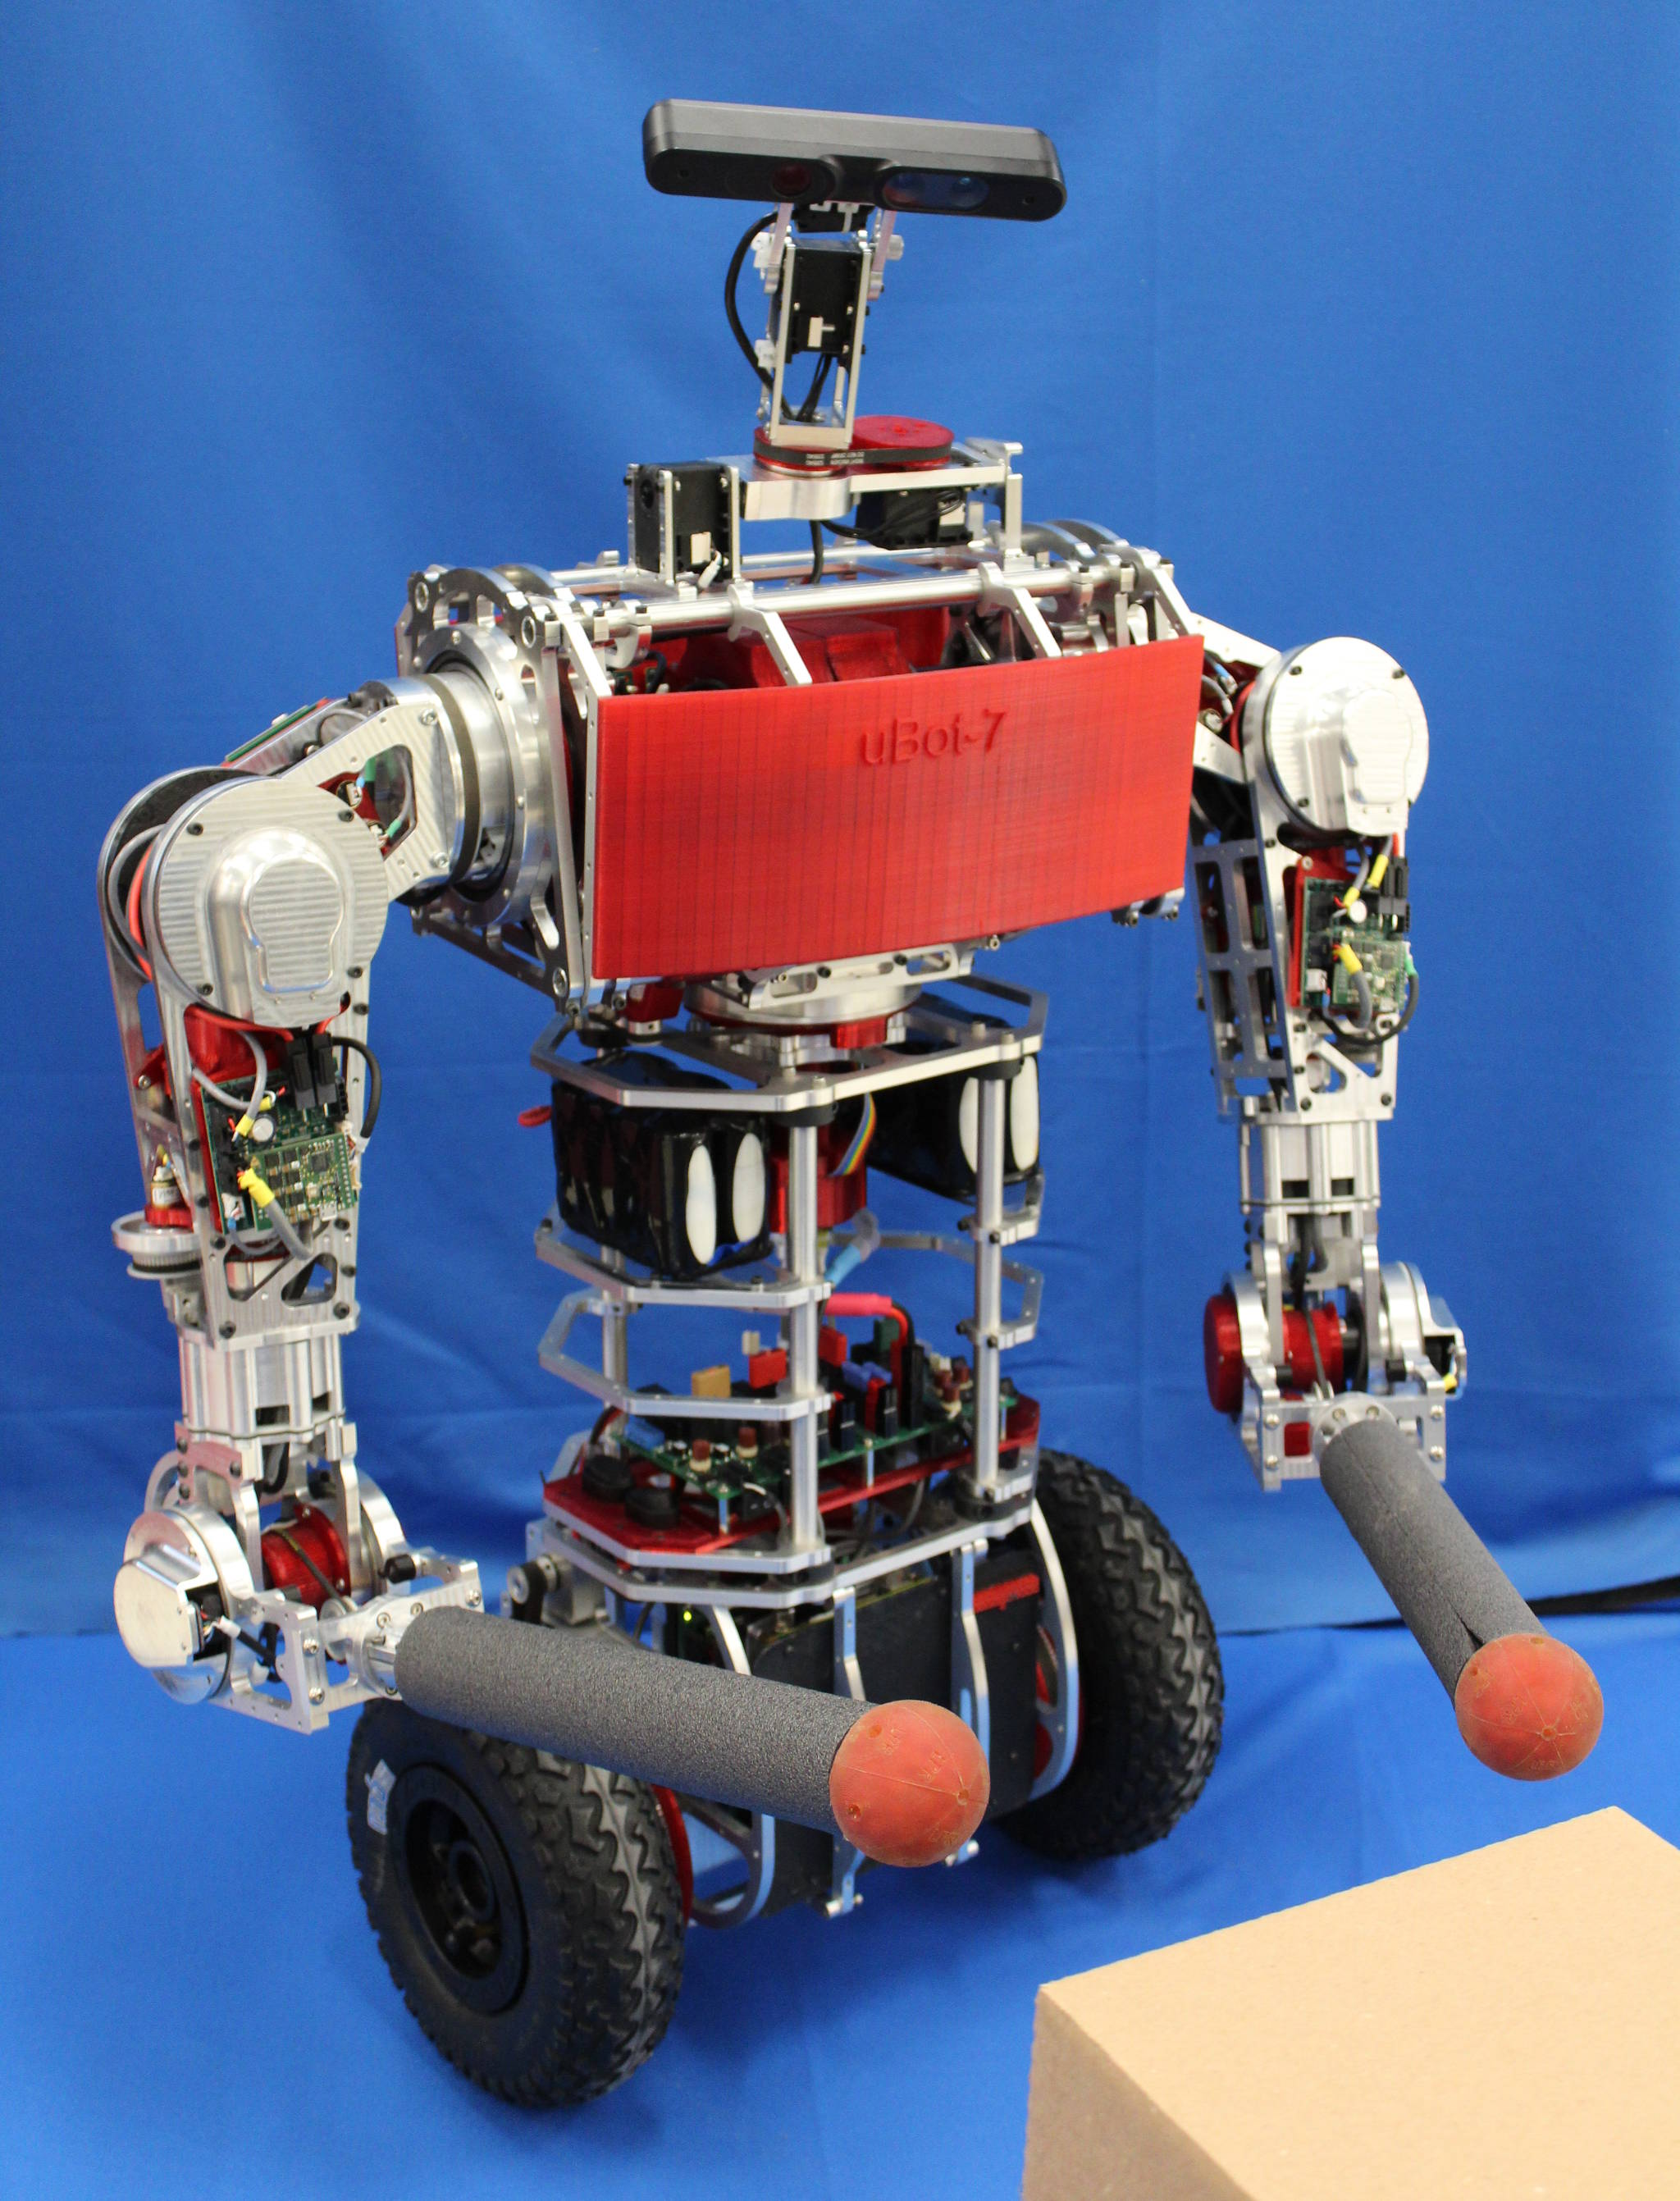 thesis of robotics Contents robotic technology robotics technology is increasing at a fast rate, providing us with new technology that can assist with home chores.